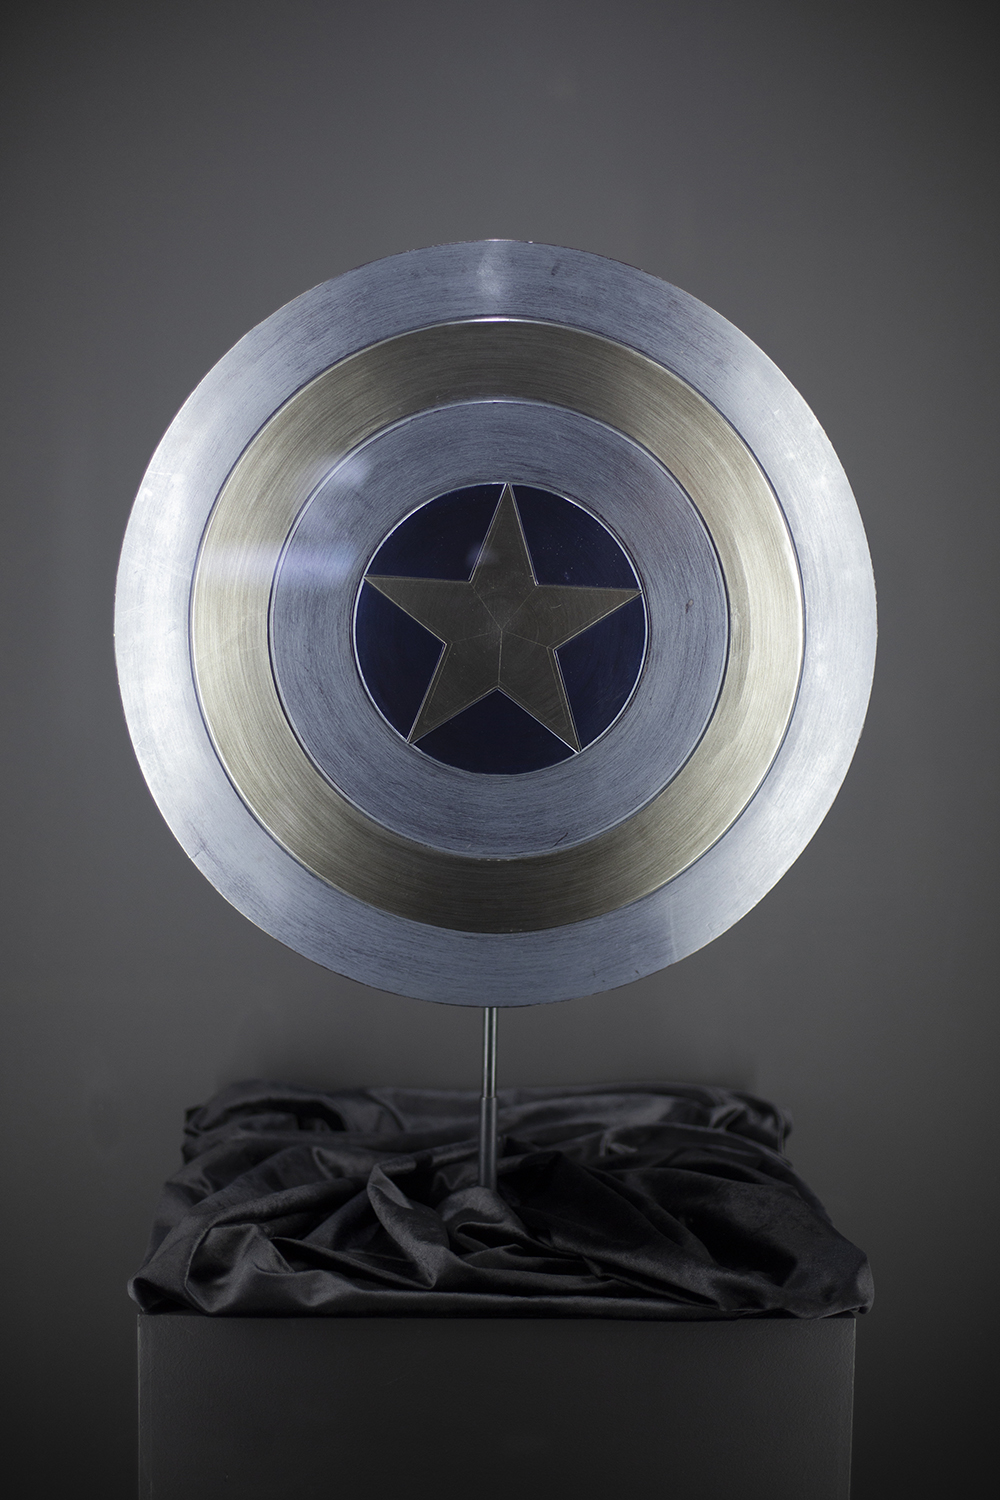 The Stealth Shield from 2014's 'Captain America: The Winter Soldier'.